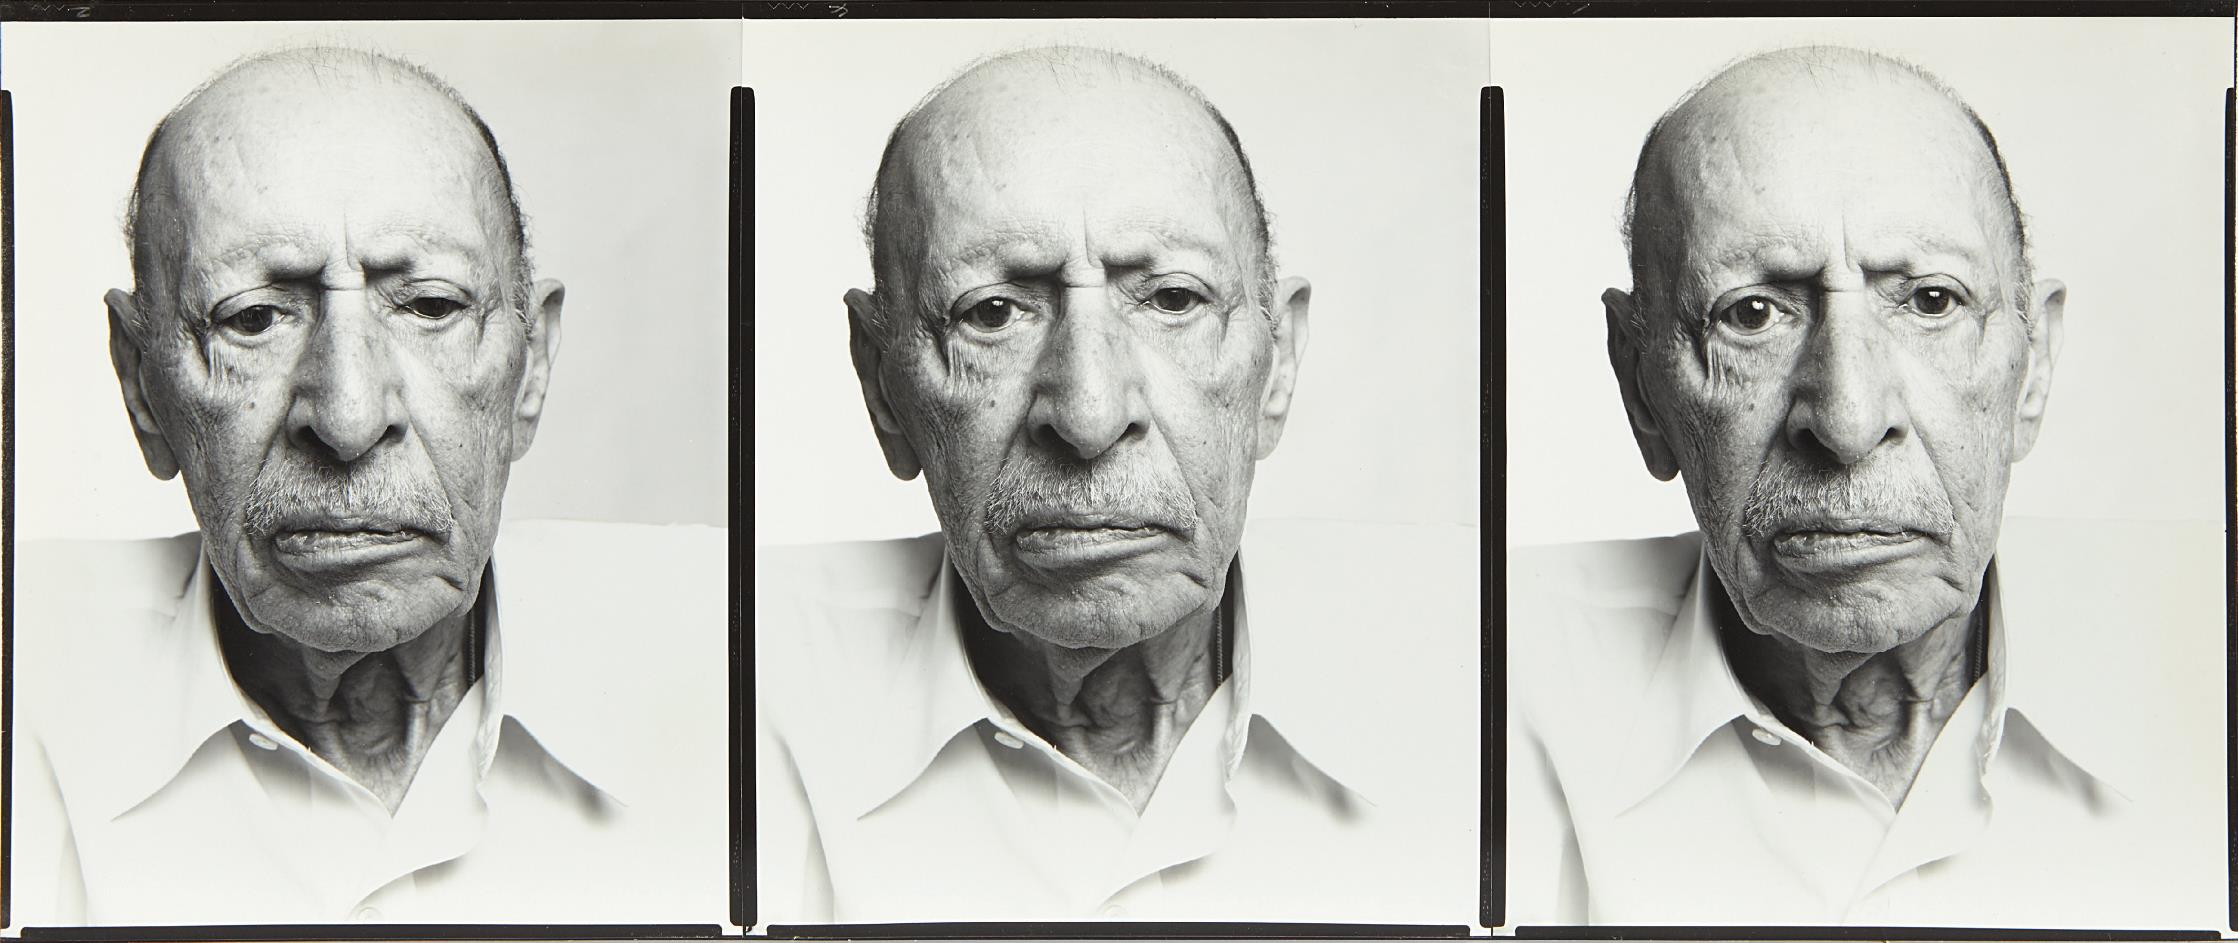 Richard Avedon-Igor Stravinsky, Composer, New York City, November 2, 1969-1969